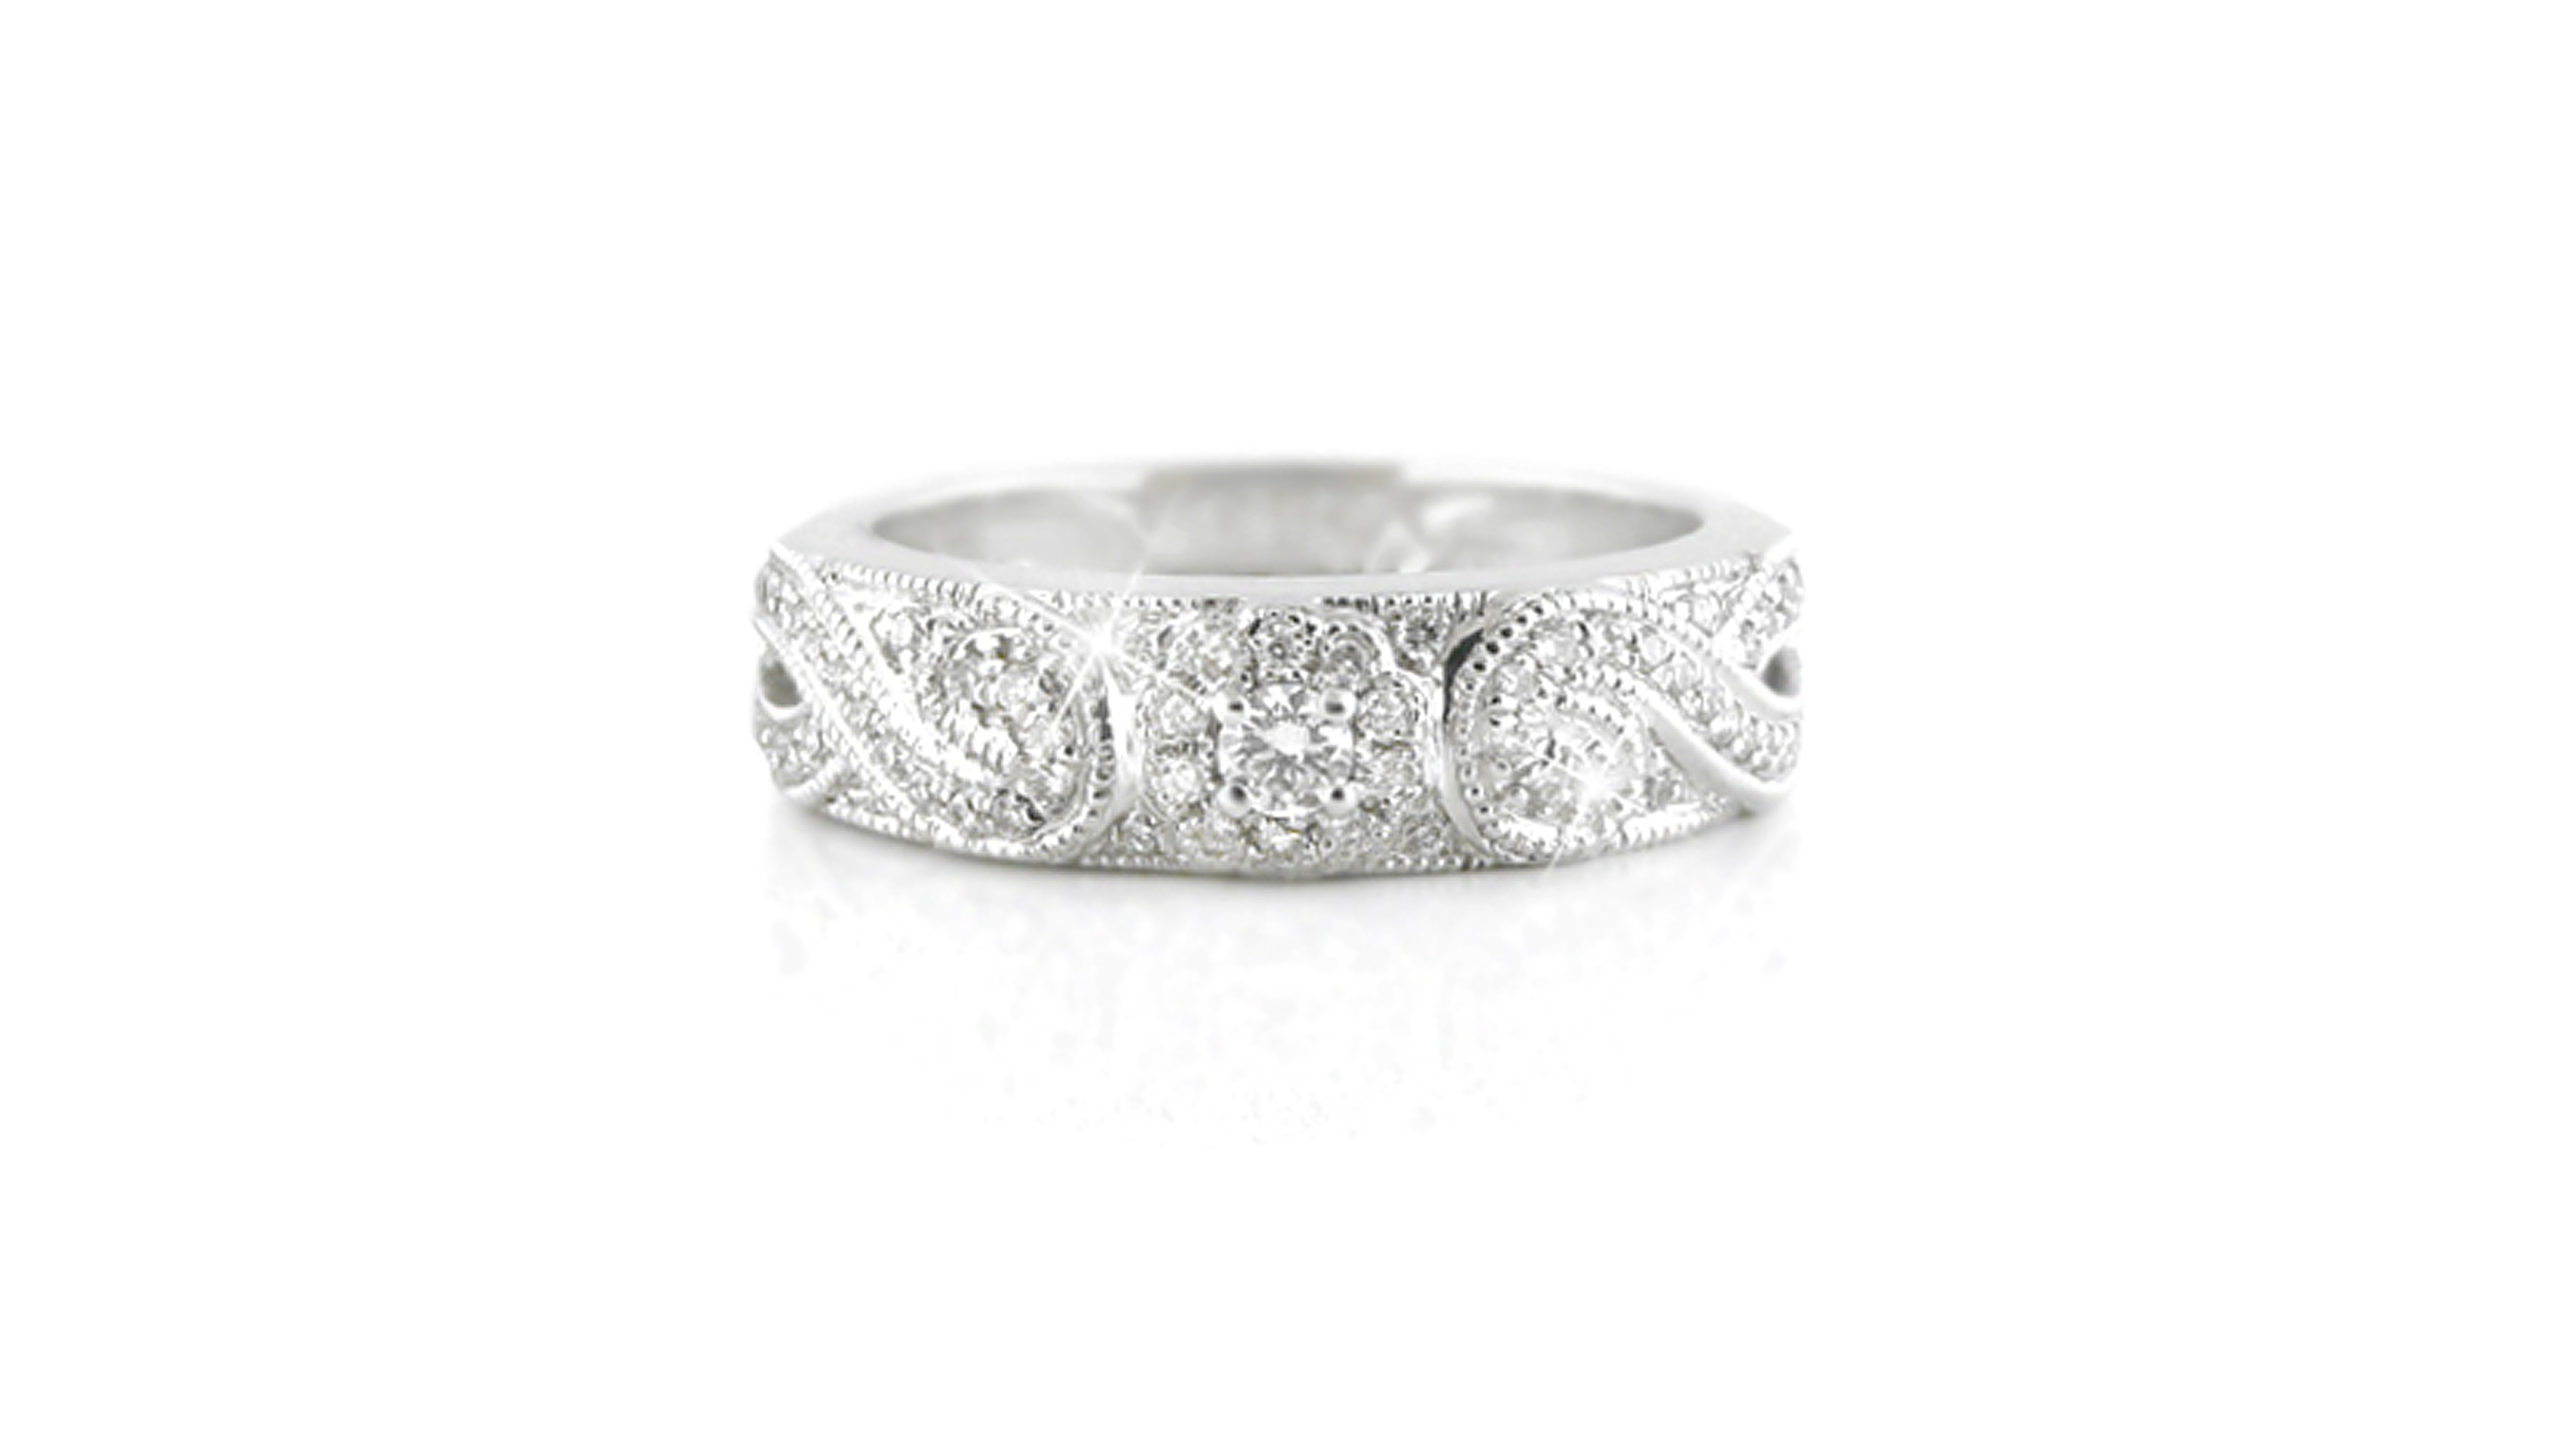 pavé-set diamond ring | 18ct white gold ring heralds a multiple of 71 pavé set diamonds in a vintage style patterned band with floral motifs, scrolls and millgrain detail